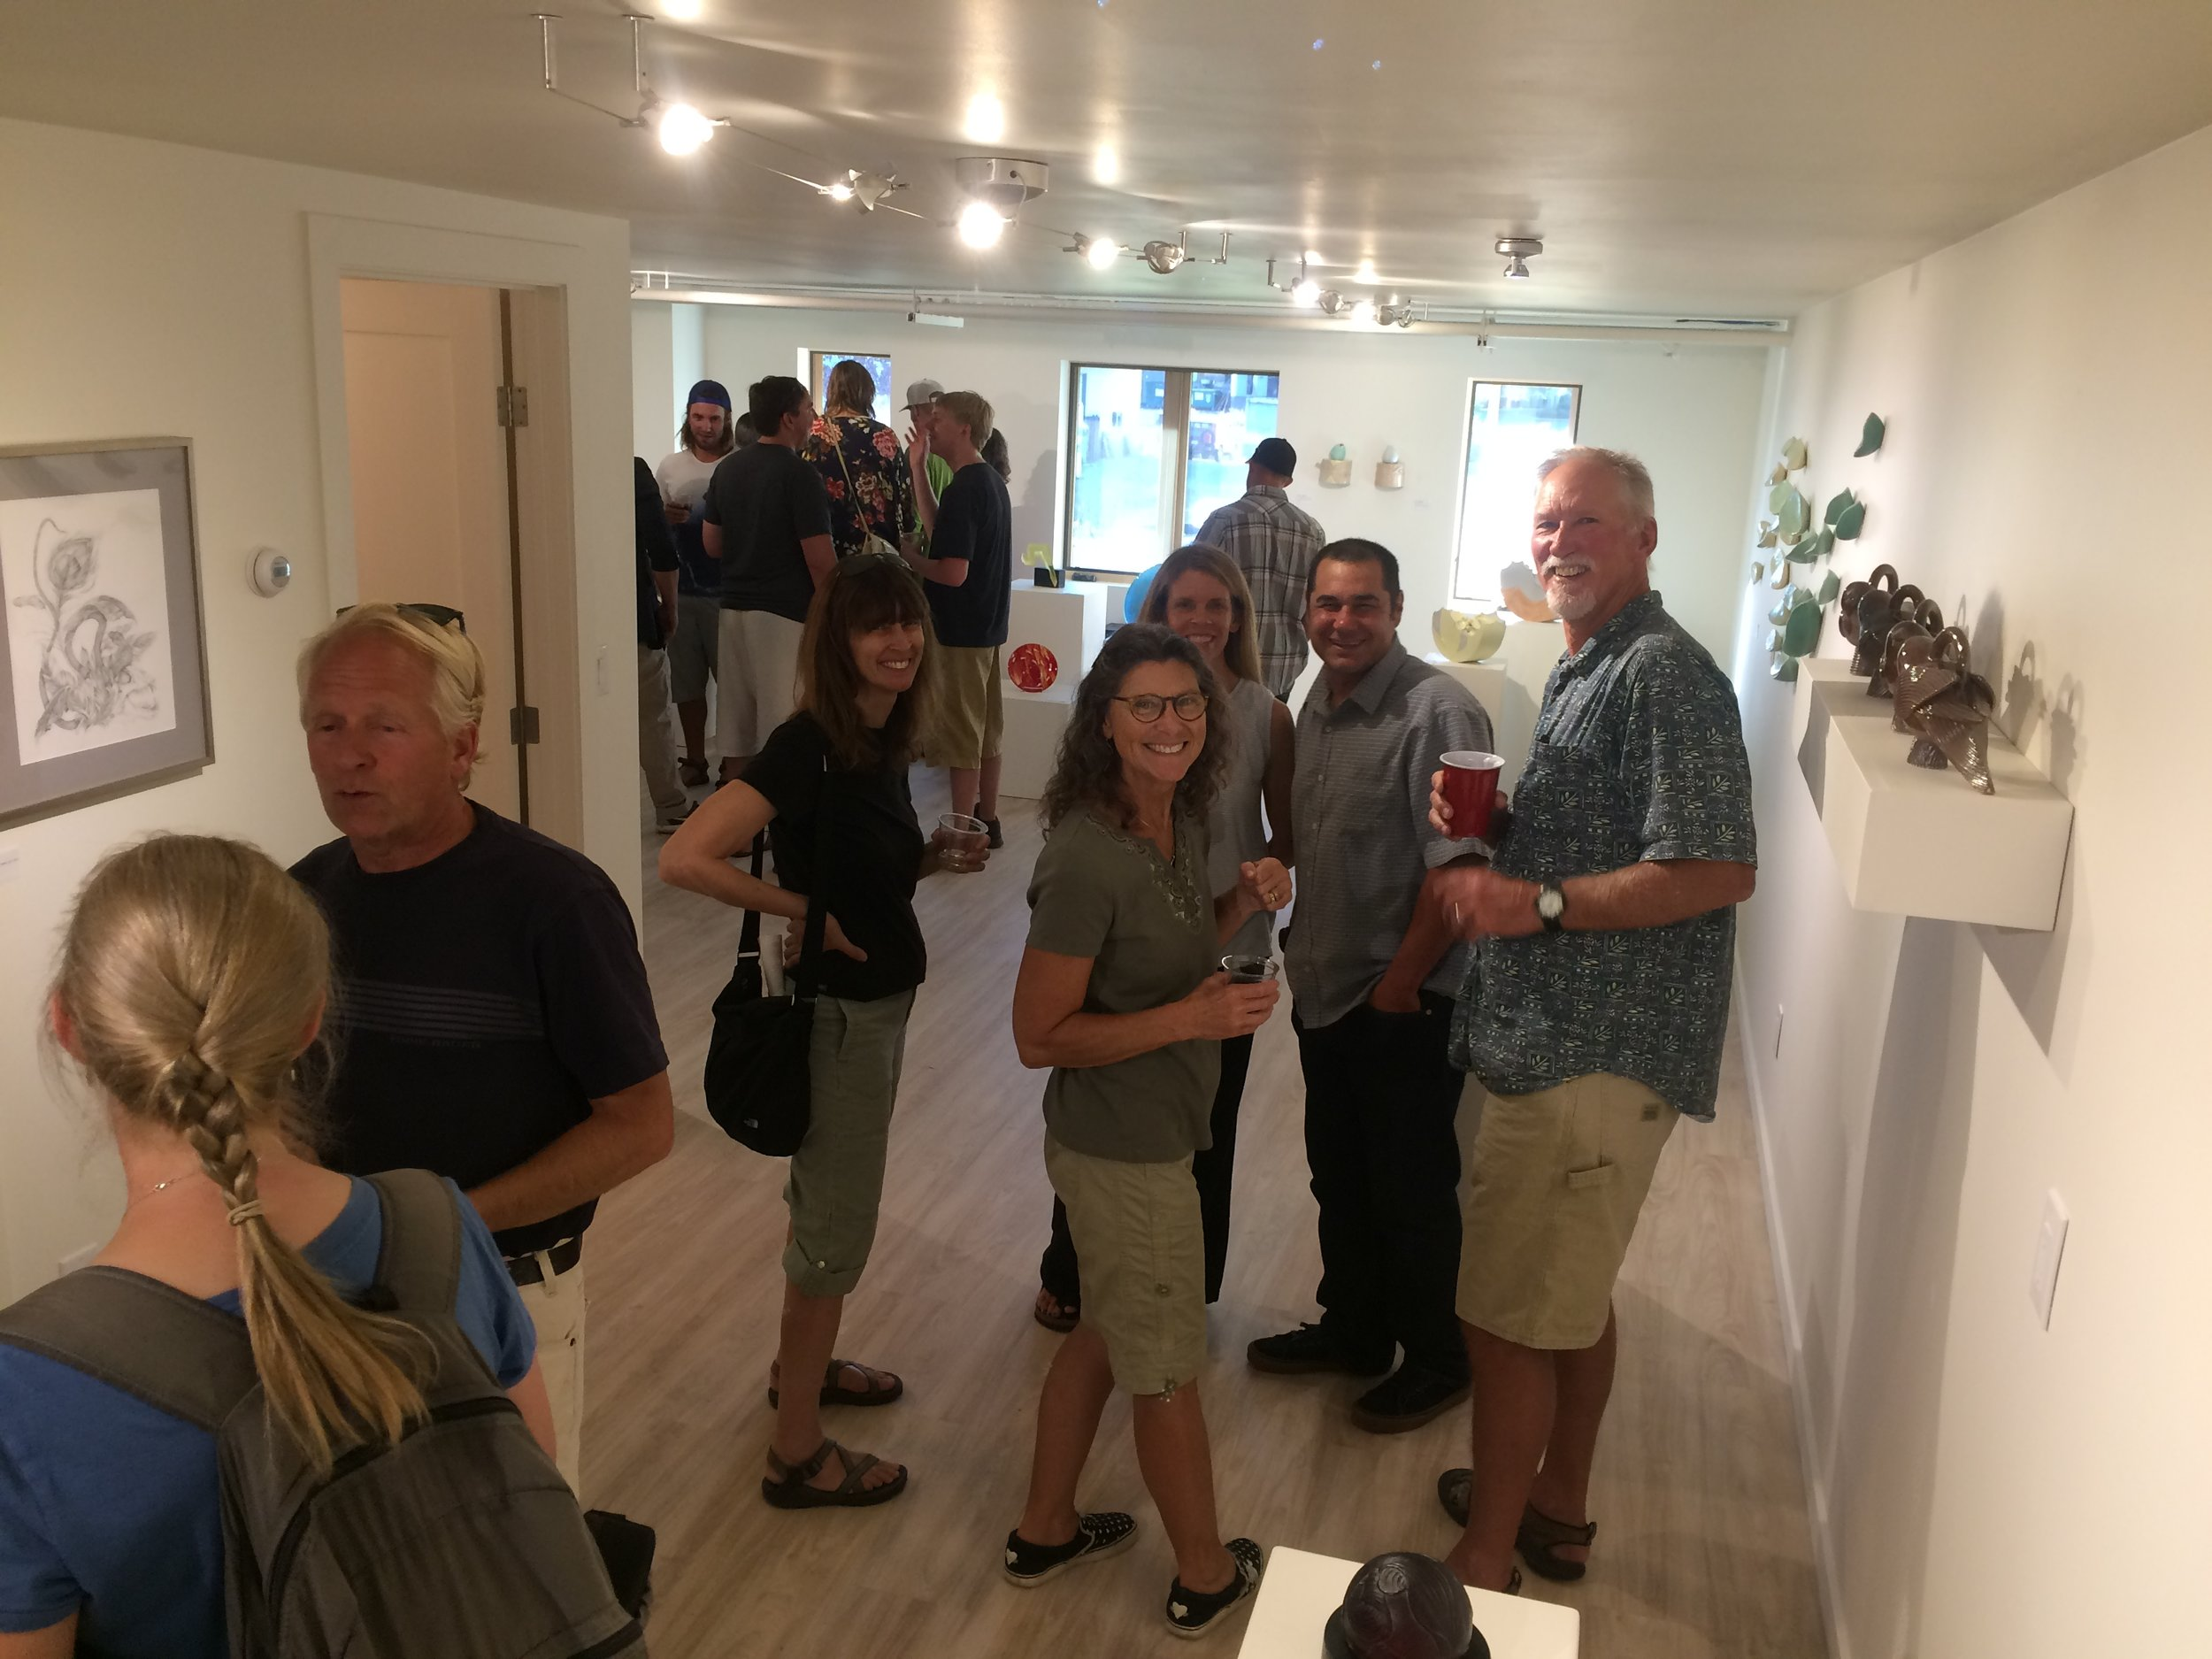 Grand opening of the Warehome Gallery in August 2016